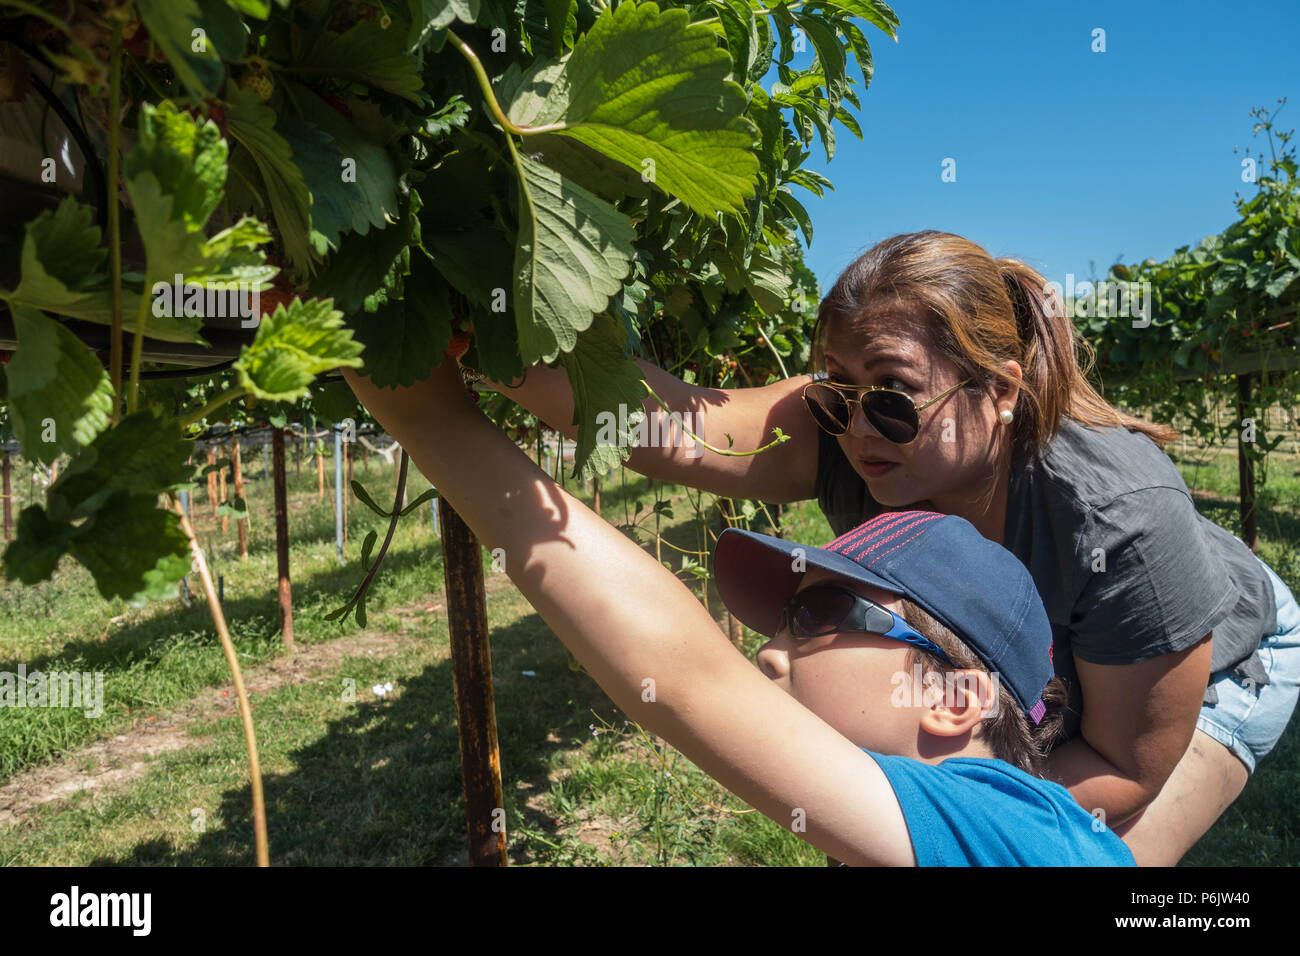 a-mother-and-son-pick-strawberries-on-a-pick-your-own-fruit-farm-P6JW40.jpg